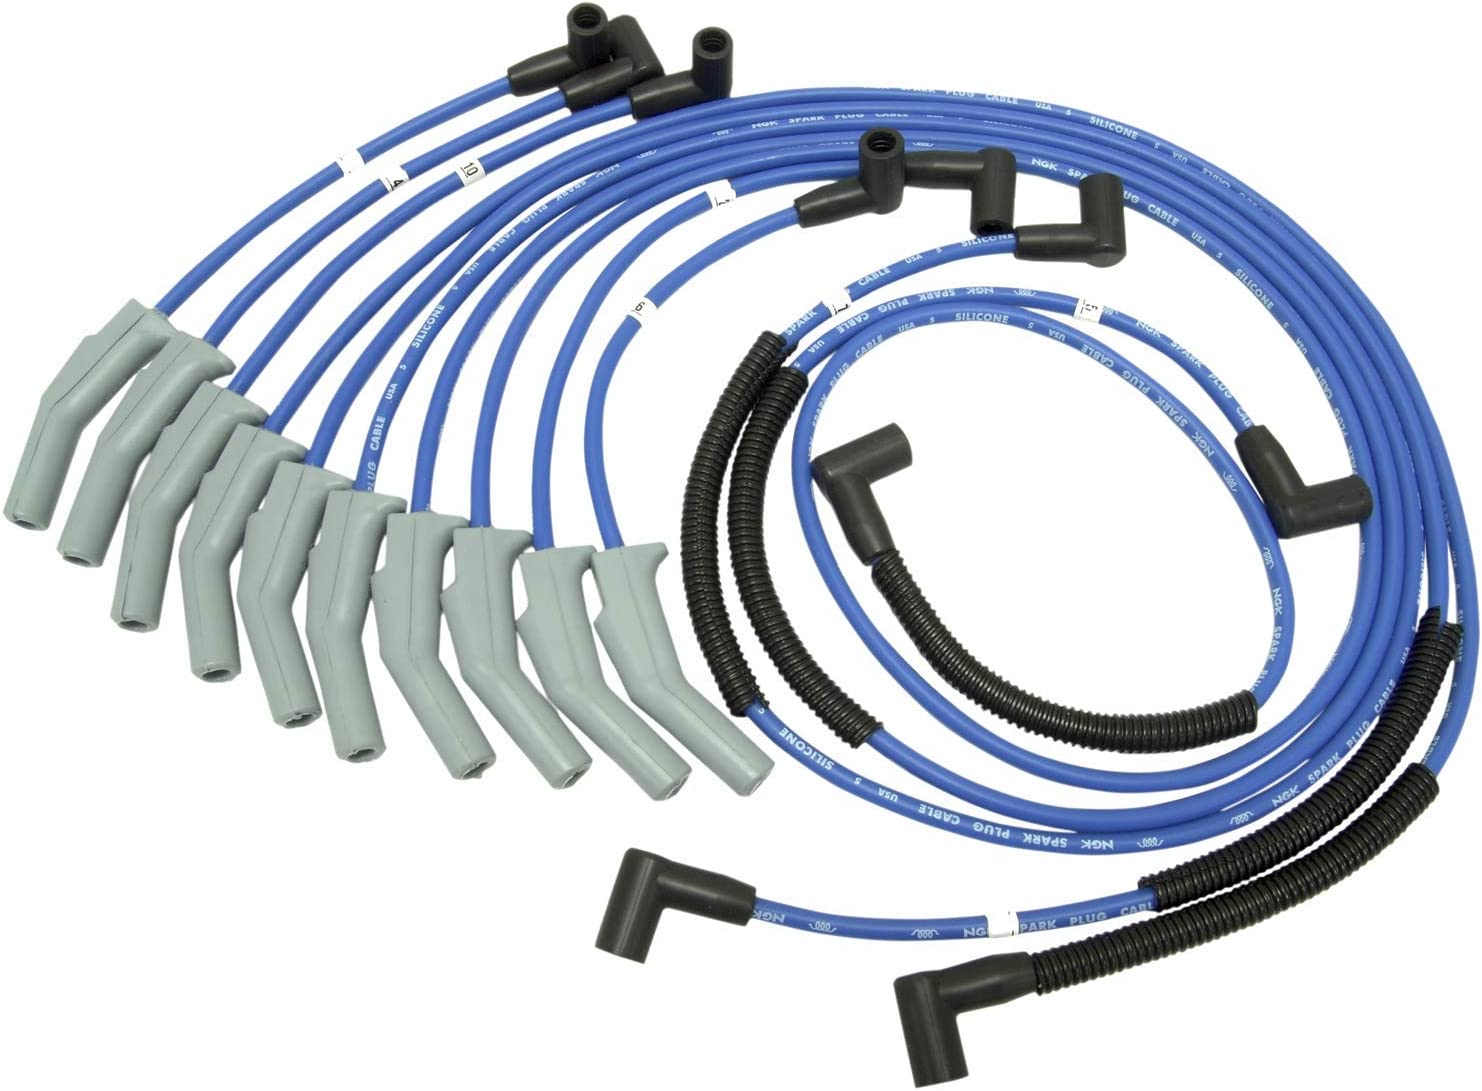 53264 NGK RC-CRX031 Spark Plug Wire Set